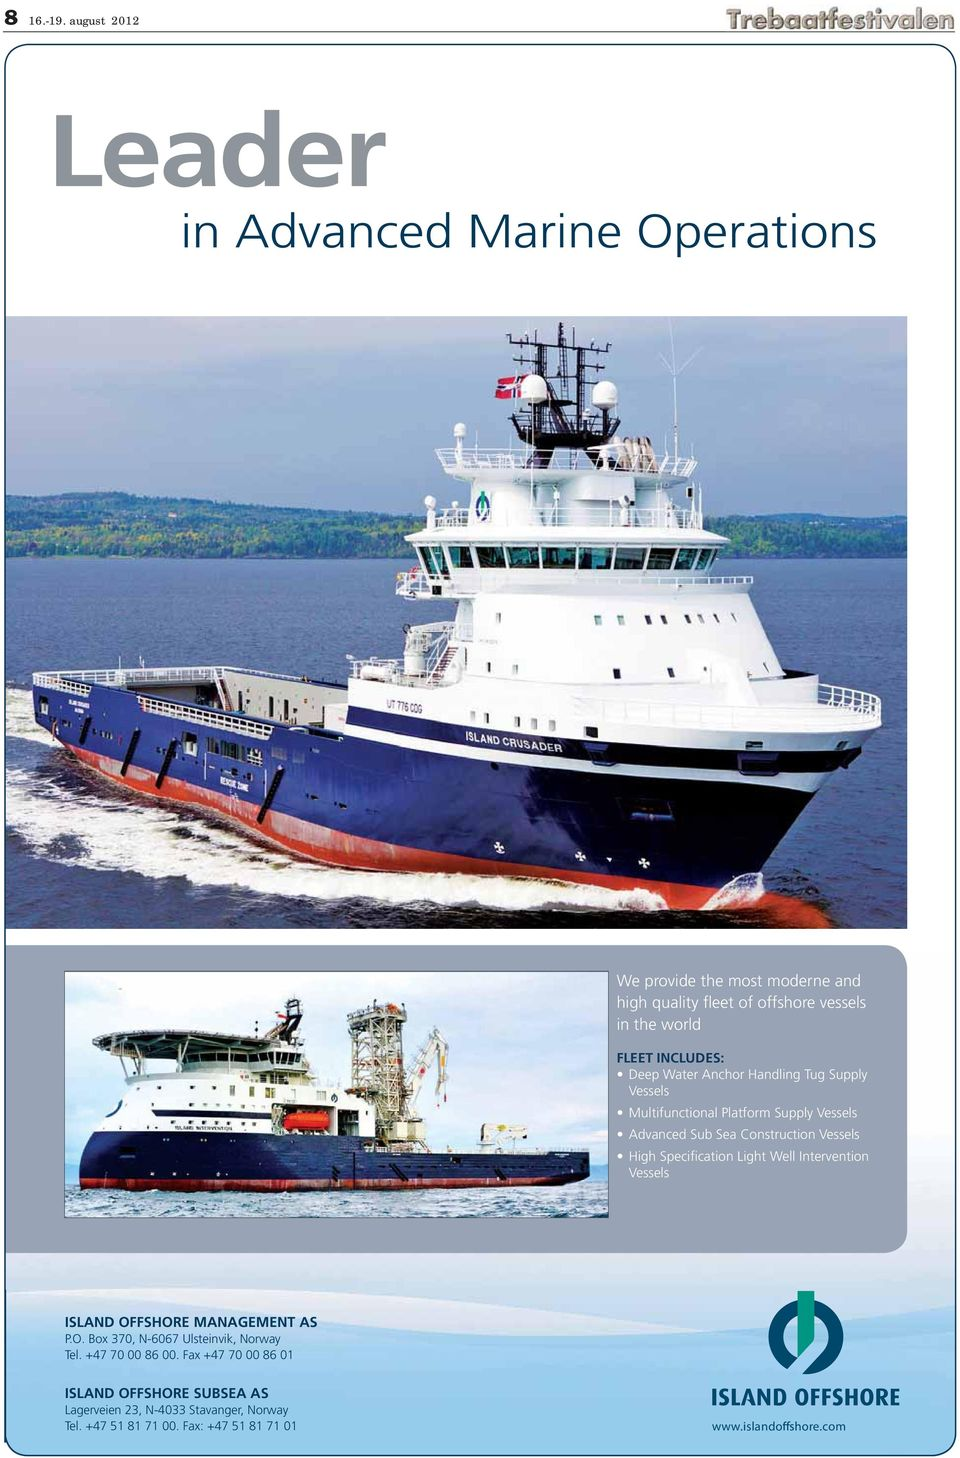 offshore vessels in the world Water Anchor Handling Tug Supply Vessels FLEET INCLUDES: Vessels Deep Water Anchor Vessels Handling Tug Supply Vessels Well Intervention Vessels